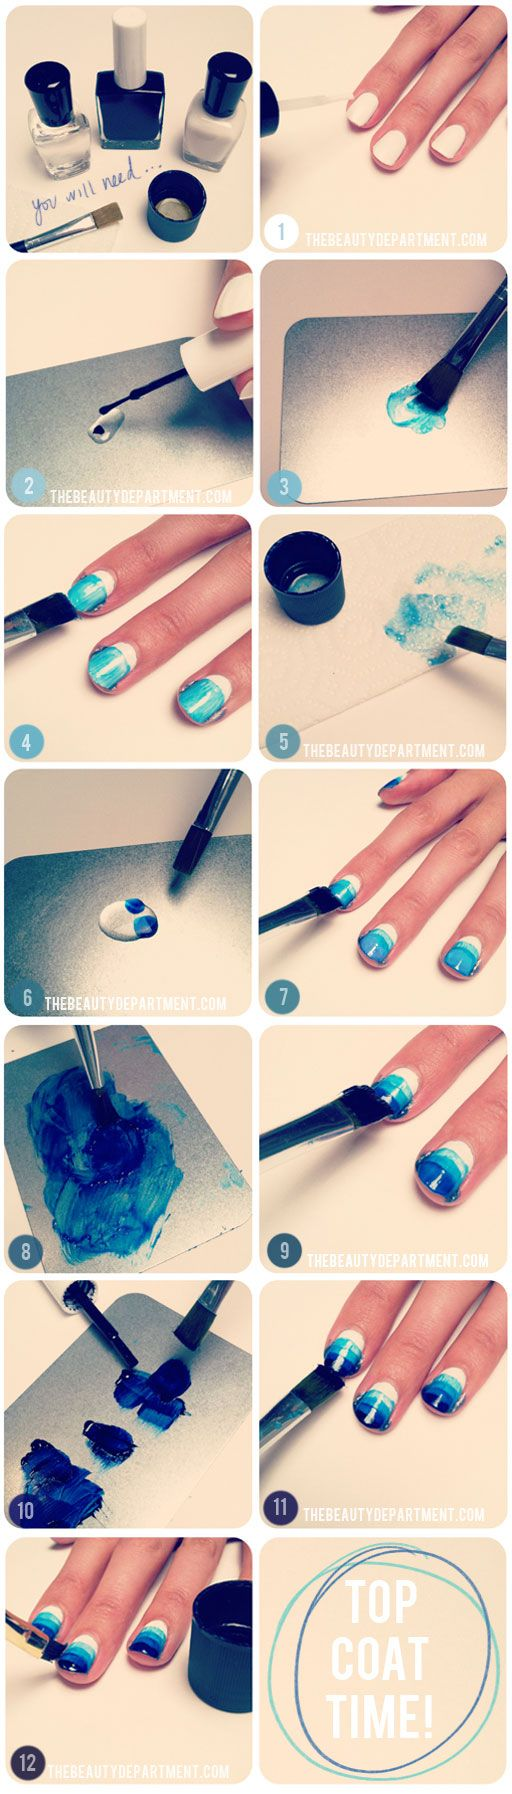 28 Nail Tutorials Best Ideas For This Summer, MOVE OVER OMBRÉ NAILS